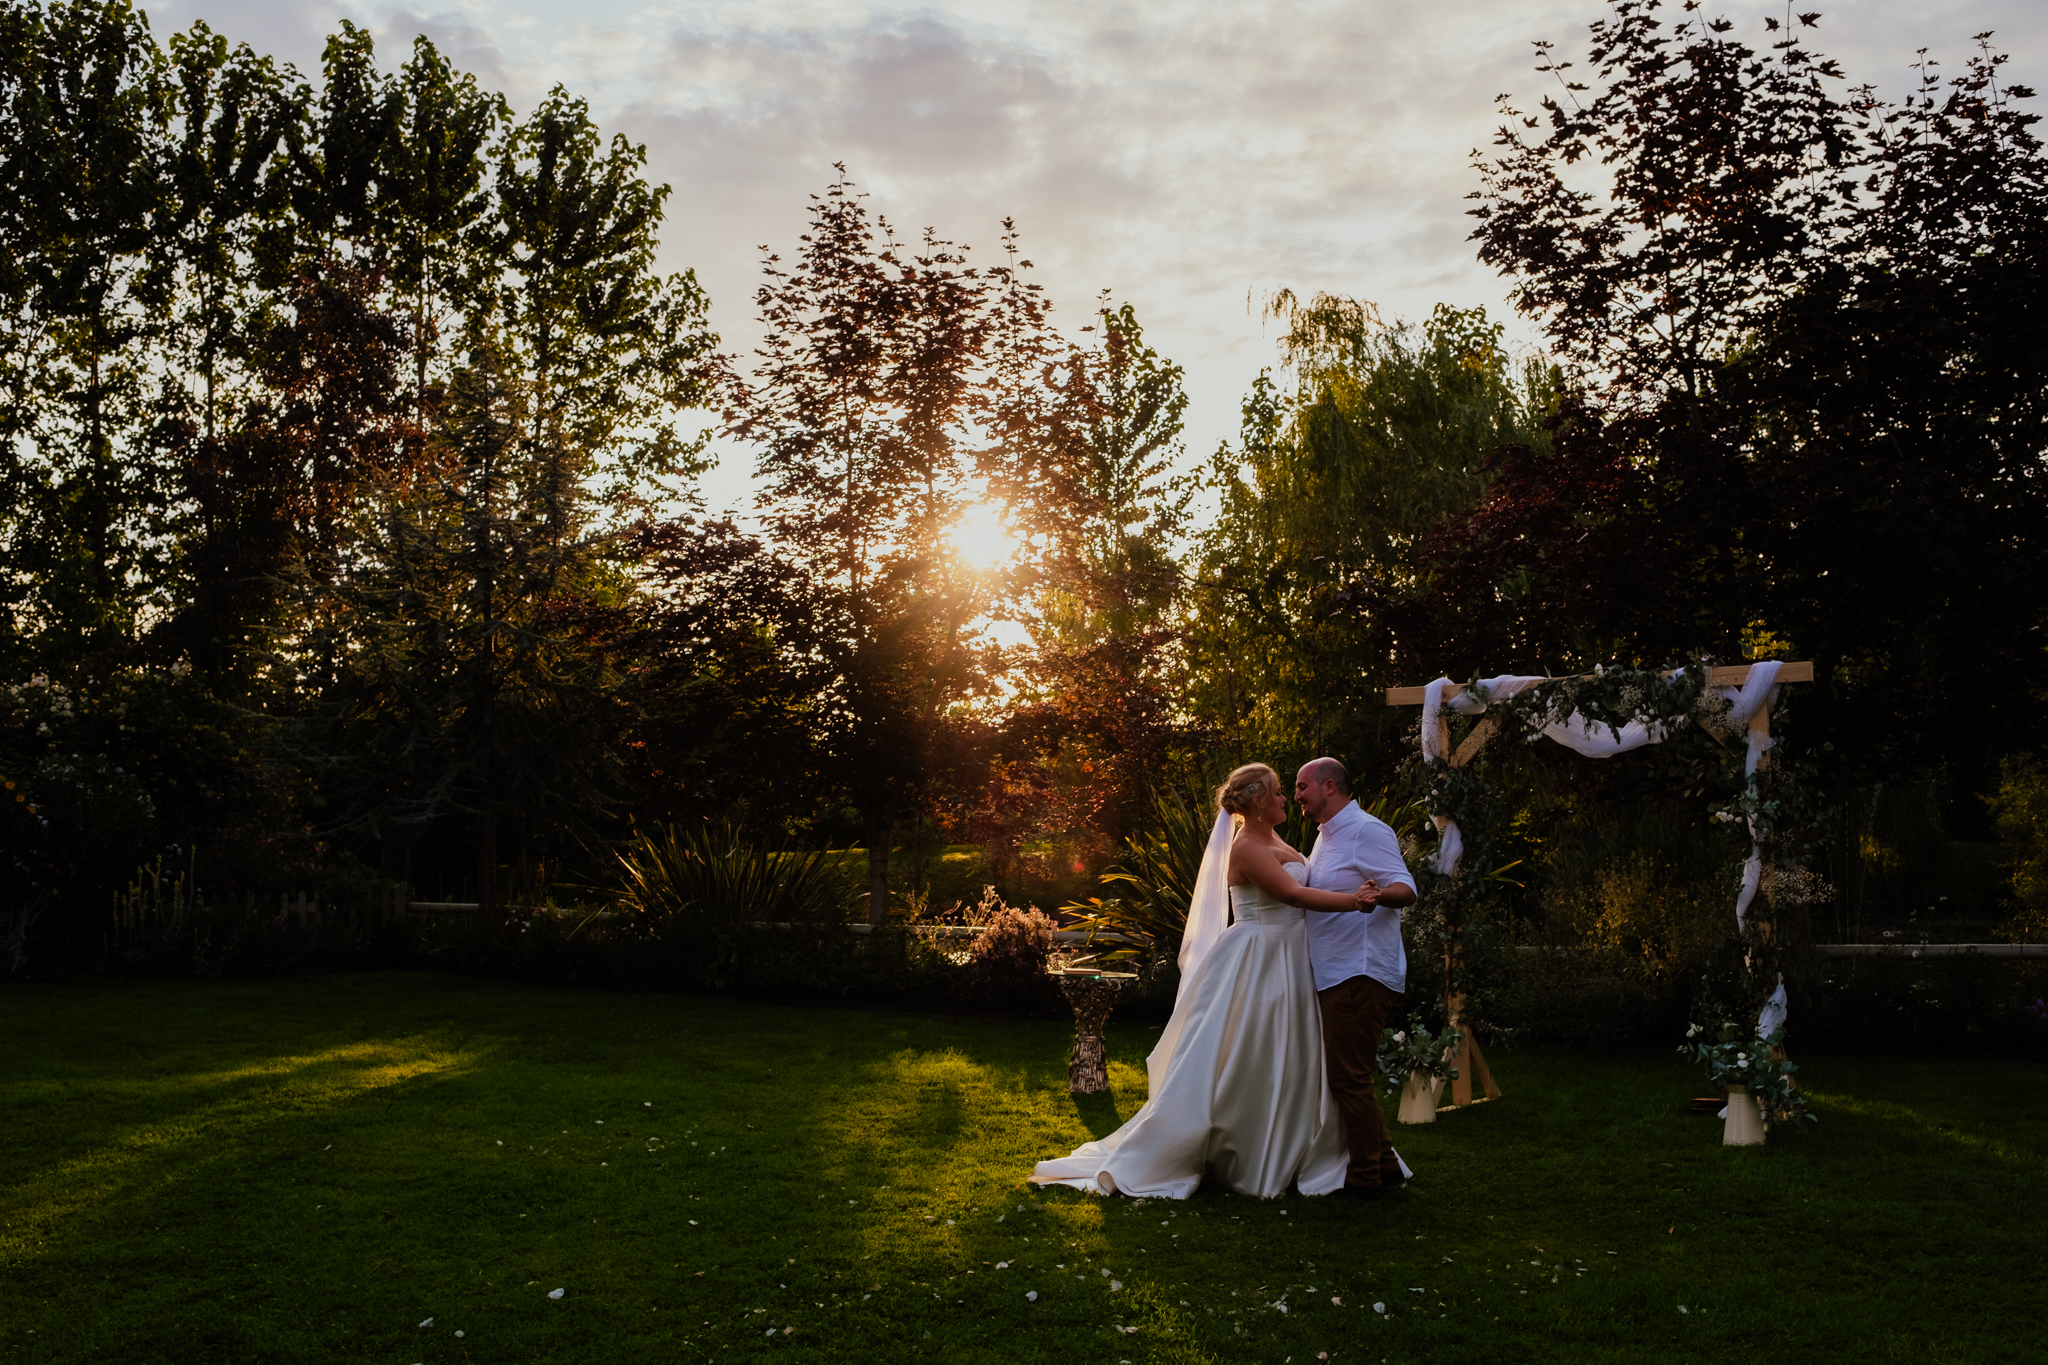 Newlyweds dance under the setting sun at Rumbolds Farm wedding